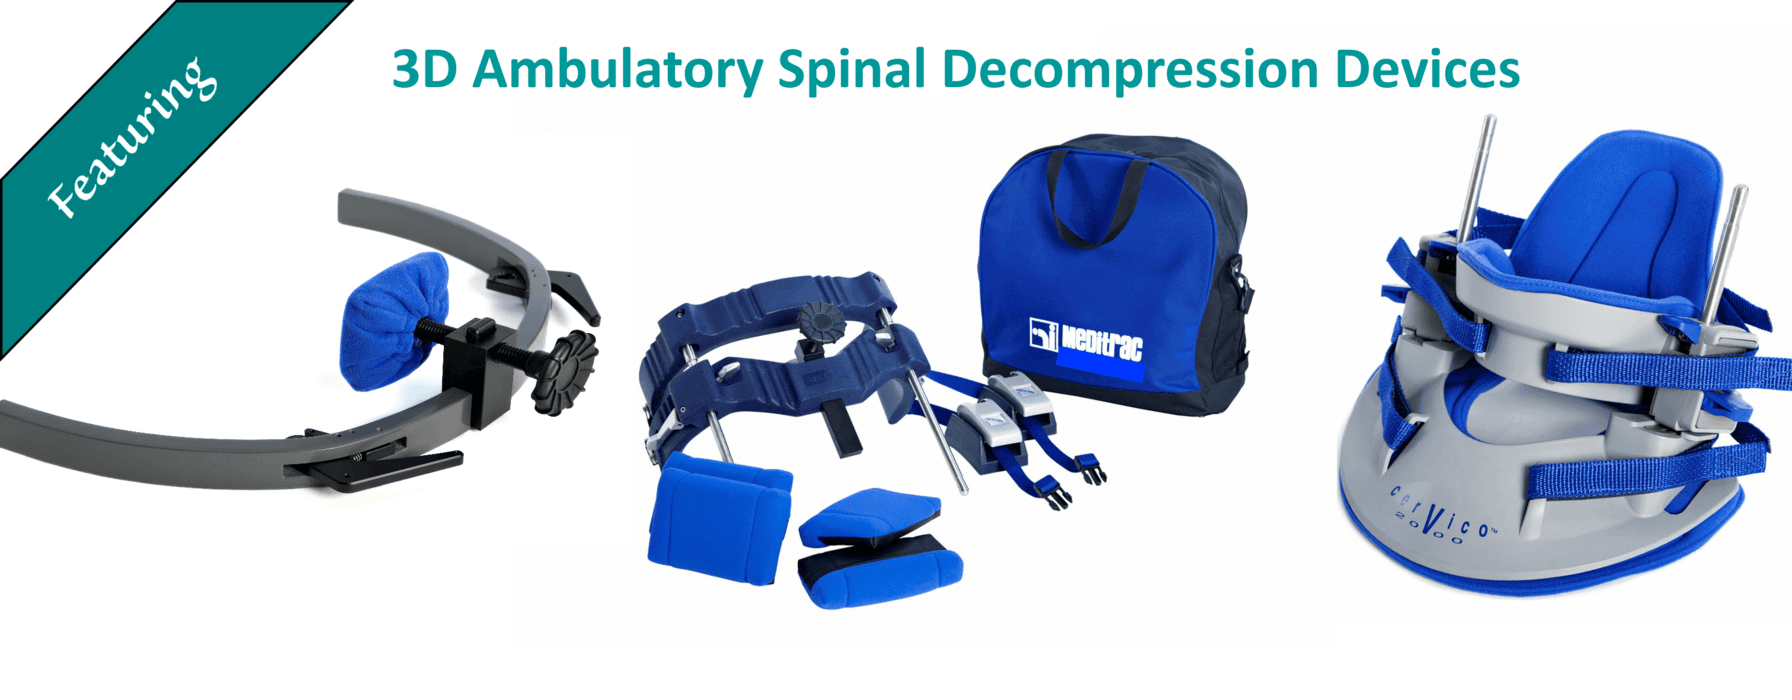 MediSpera Medical Equipment Supplier of Meditrac 3D Ambulatory Spinal Decompression Devices, including the Vertetrac, Cervico 2000 & DBS Scoliosis Rail Attachment, for neck & lower back pain relief Vertetrac Cervico 2000 avoid spinal surgery, chiropractic equipment